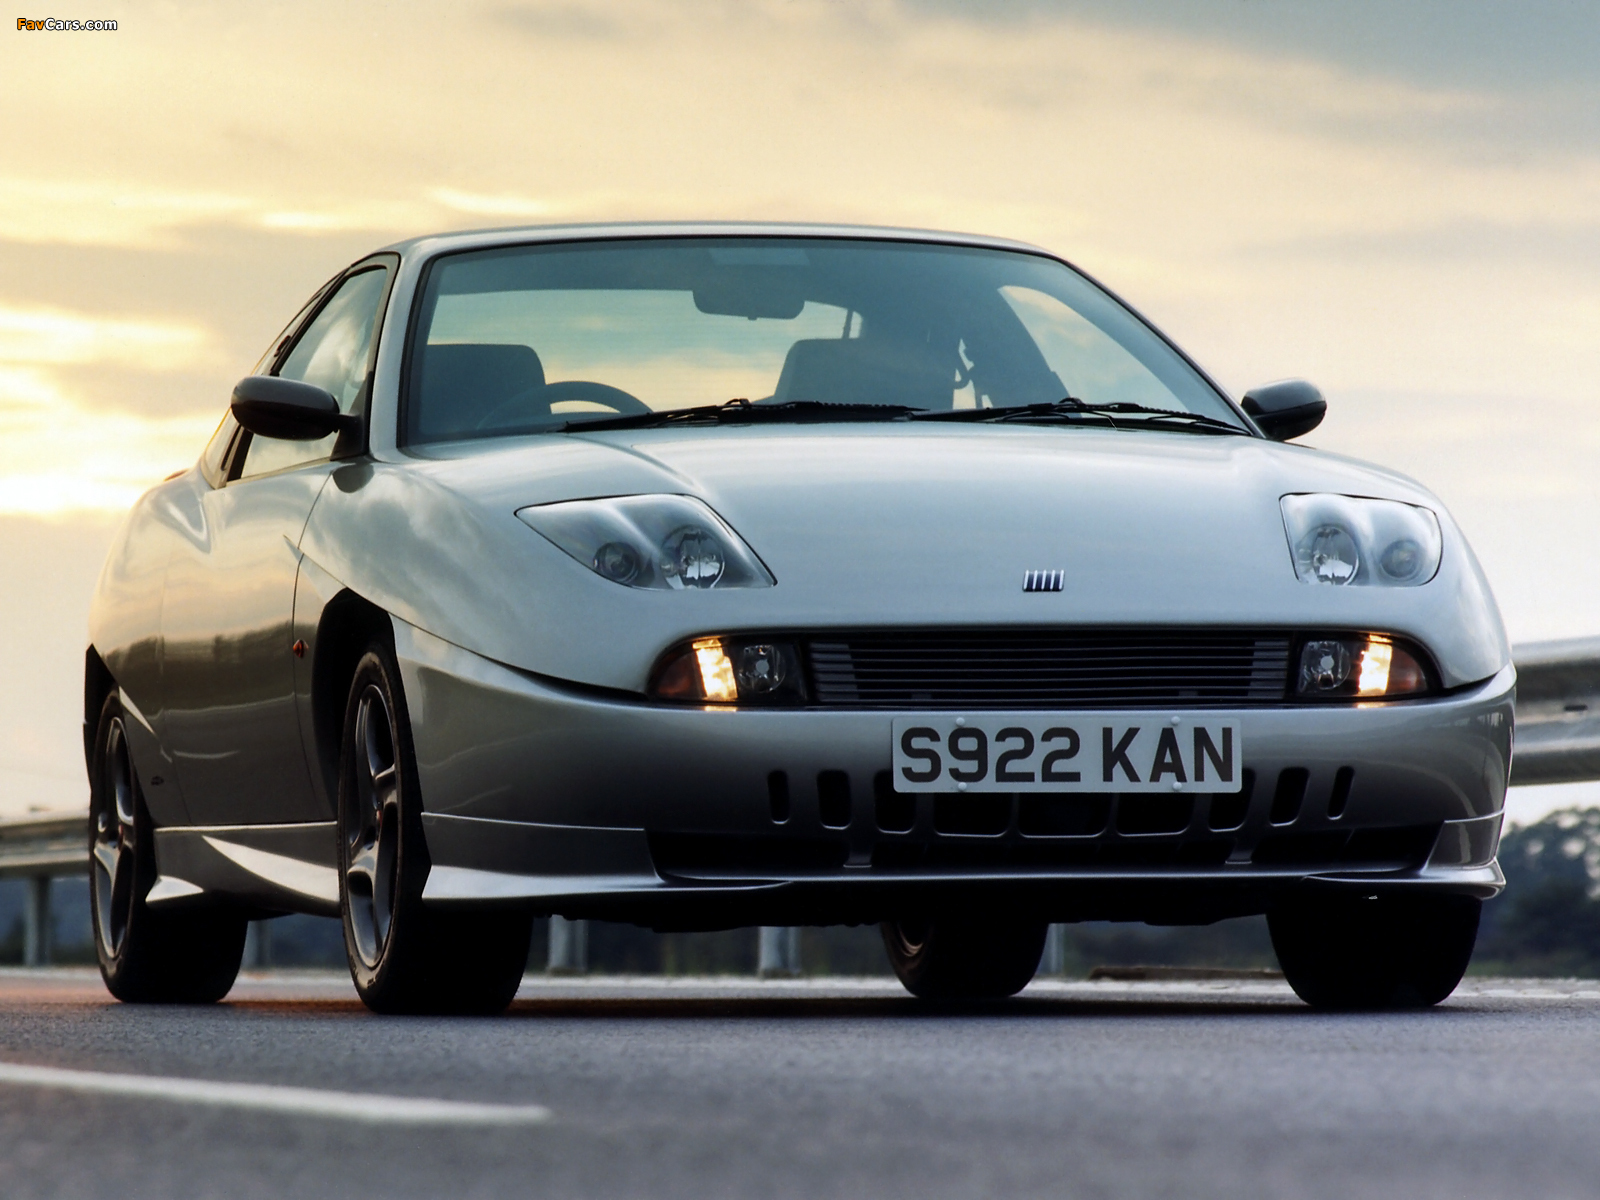 wallpapers fiat coupe 1998 1 Fiat Coupé – Carisma Italiano